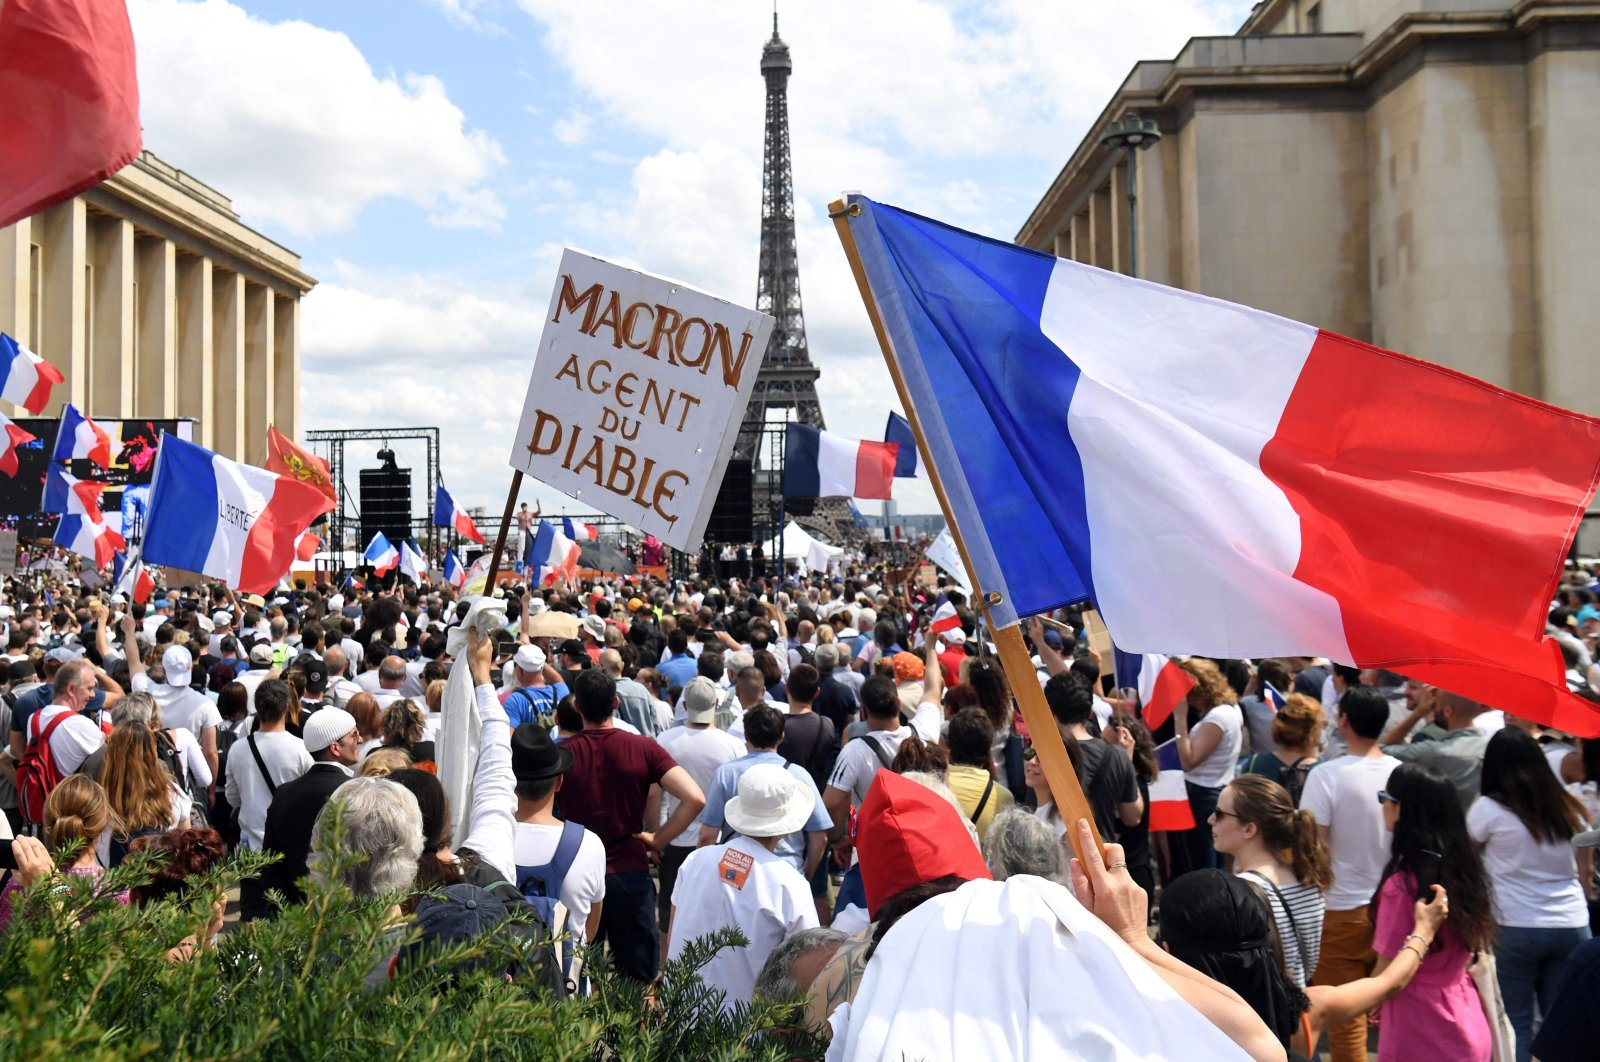 """Protesters hold flags and placards during a protest against the compulsory vaccination for certain workers and the mandatory use of the health pass called for by the French government, on the """"Droits de l'homme"""" (human rights) esplanade at the Trocadero Square, Paris, France, July 24, 2021. (AFP Photo)"""